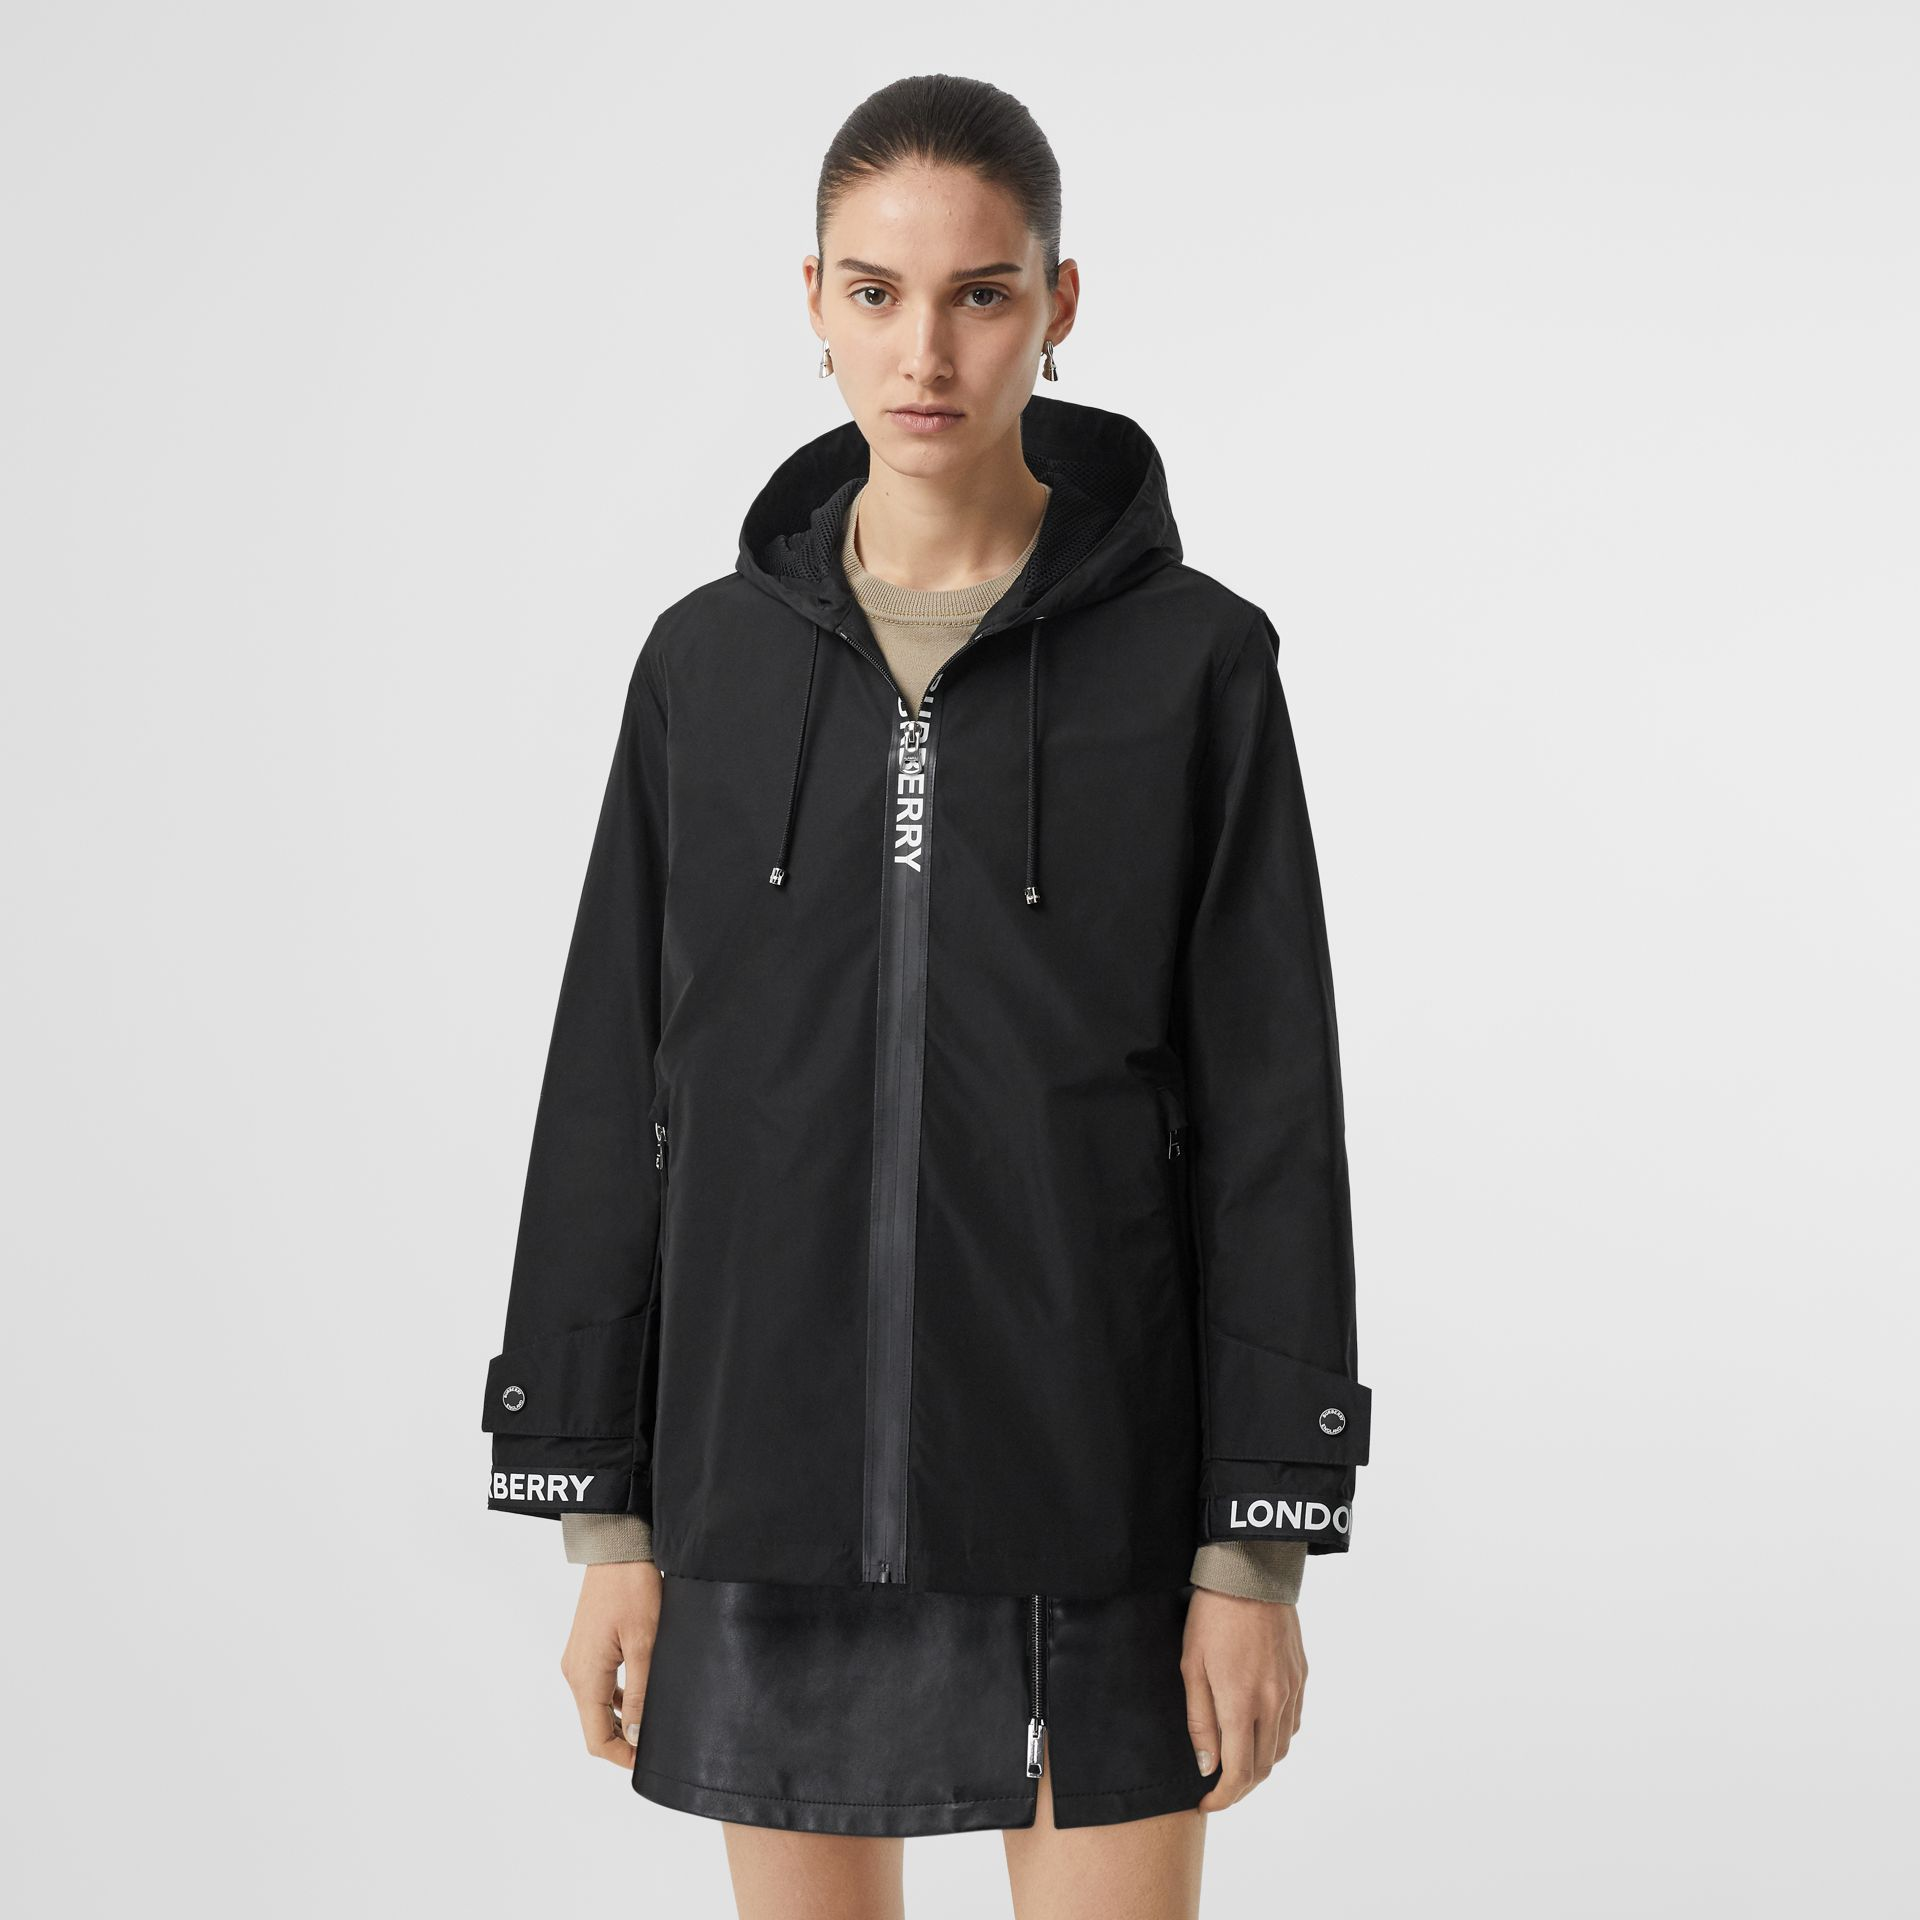 Logo Detail Shape-memory Taffeta Hooded Jacket in Black - Women | Burberry United States - gallery image 4